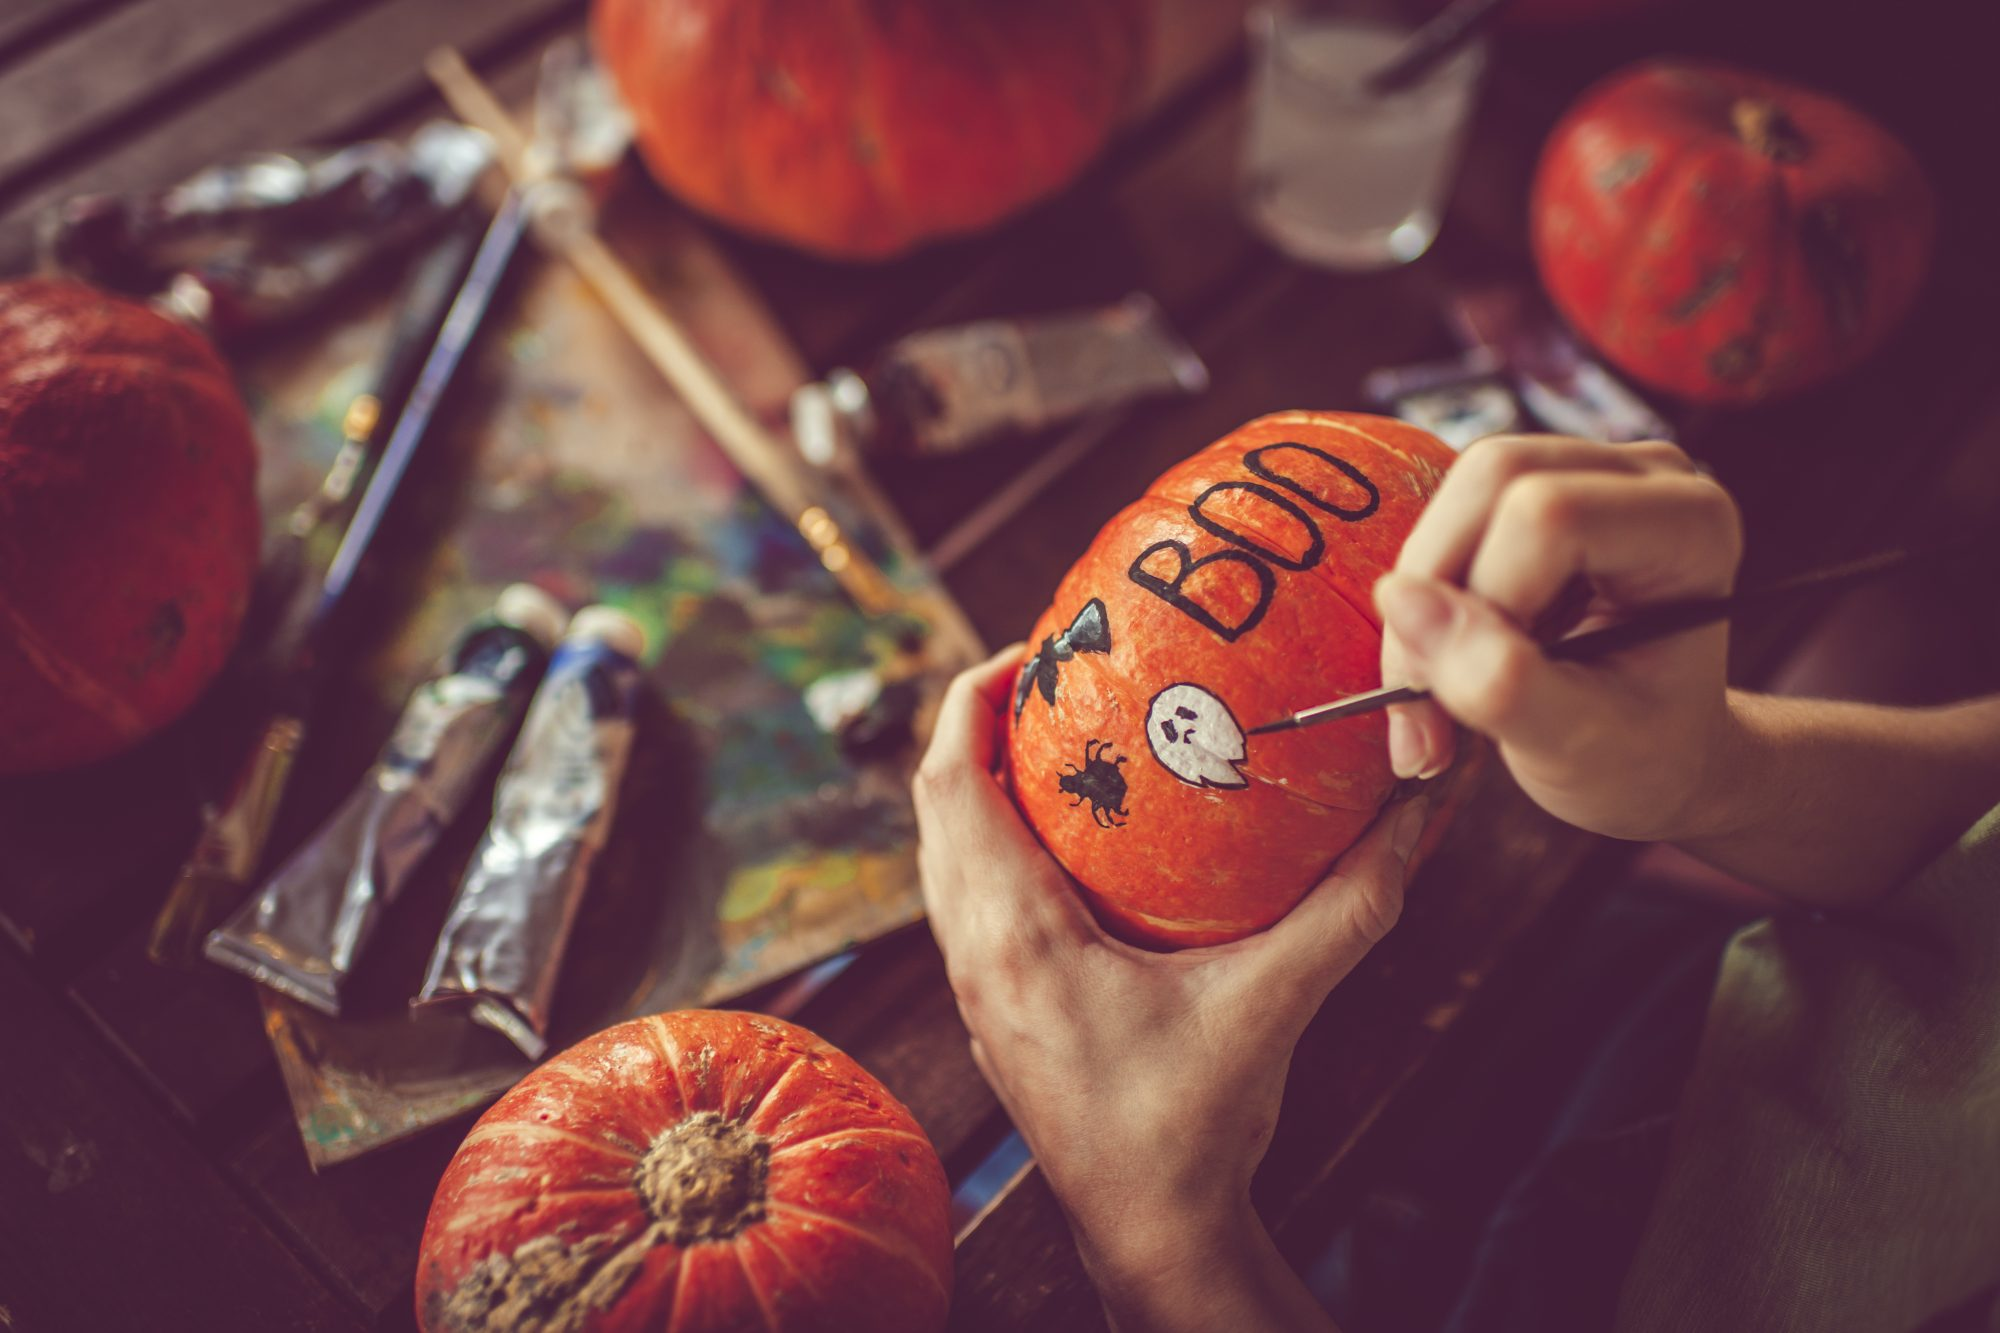 Young girl painting on pumpkin in Halloween